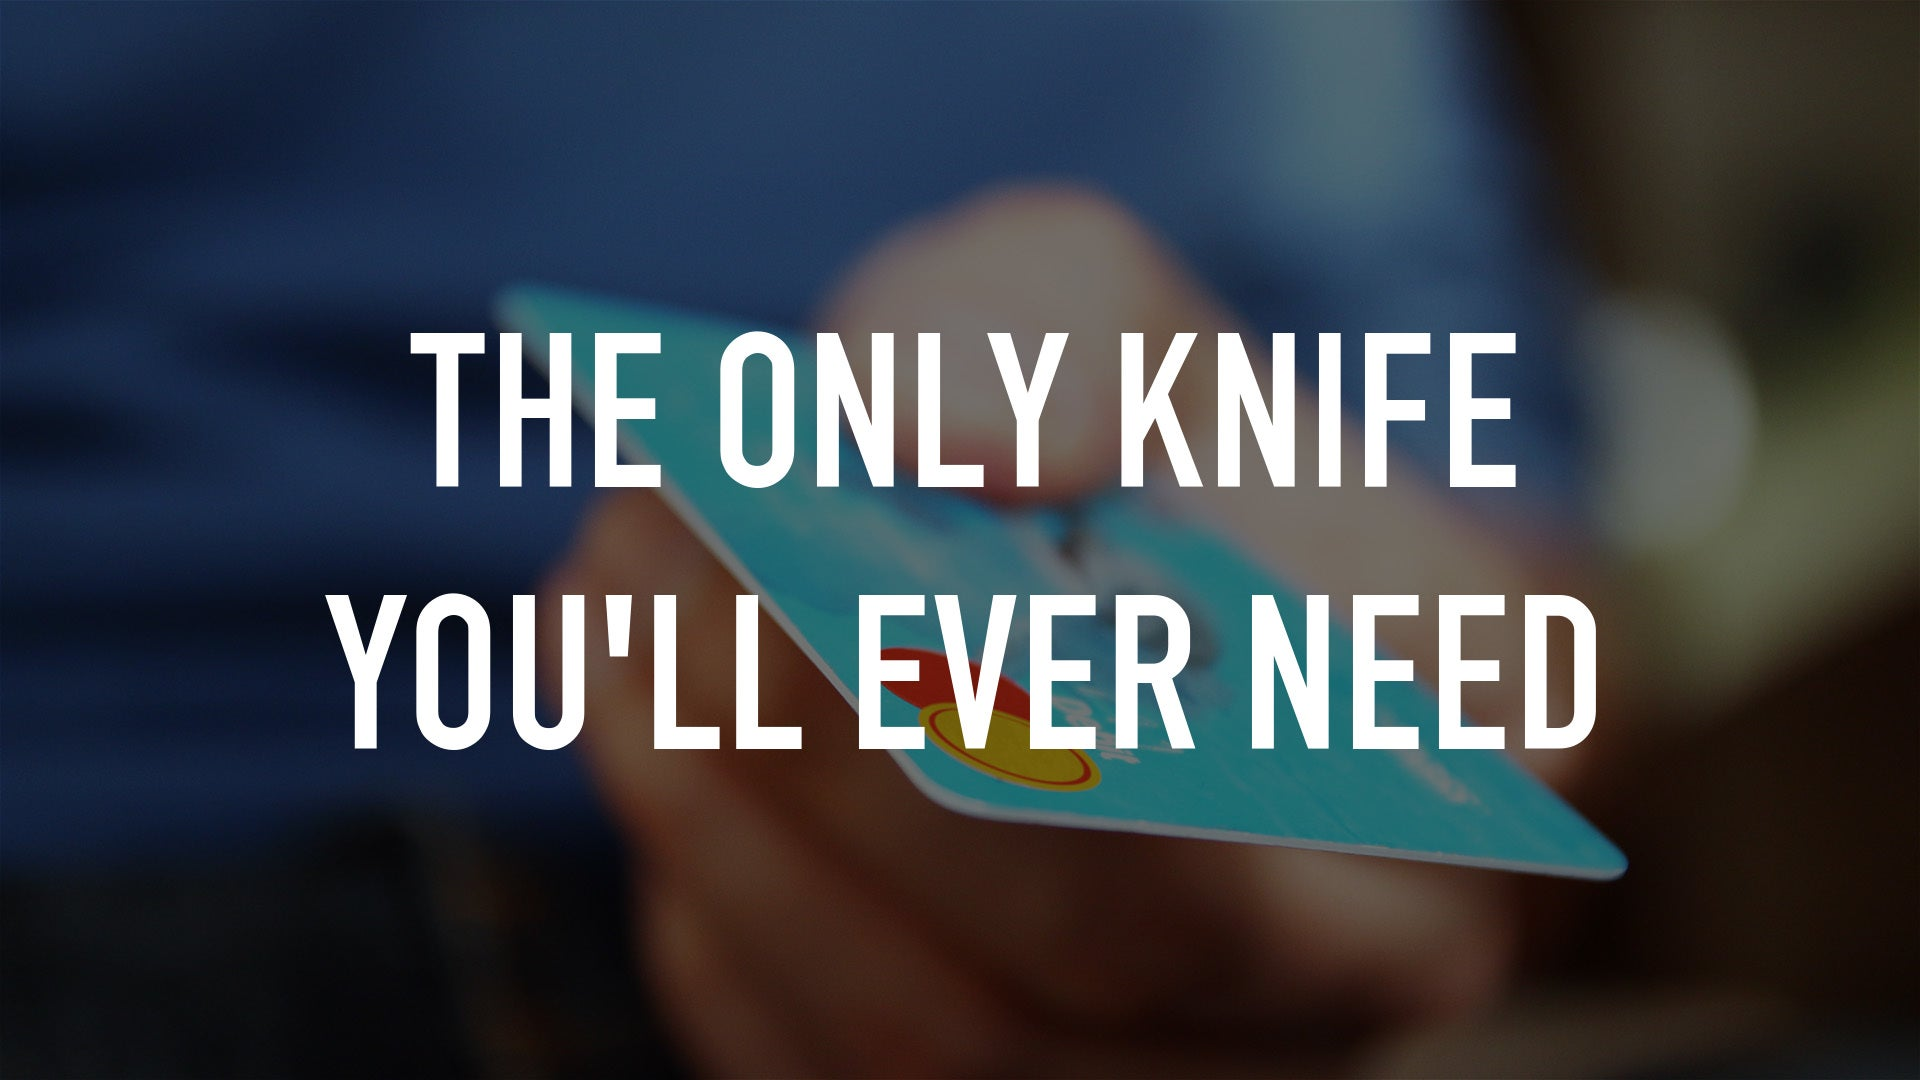 The Only Knife You'll Ever Need